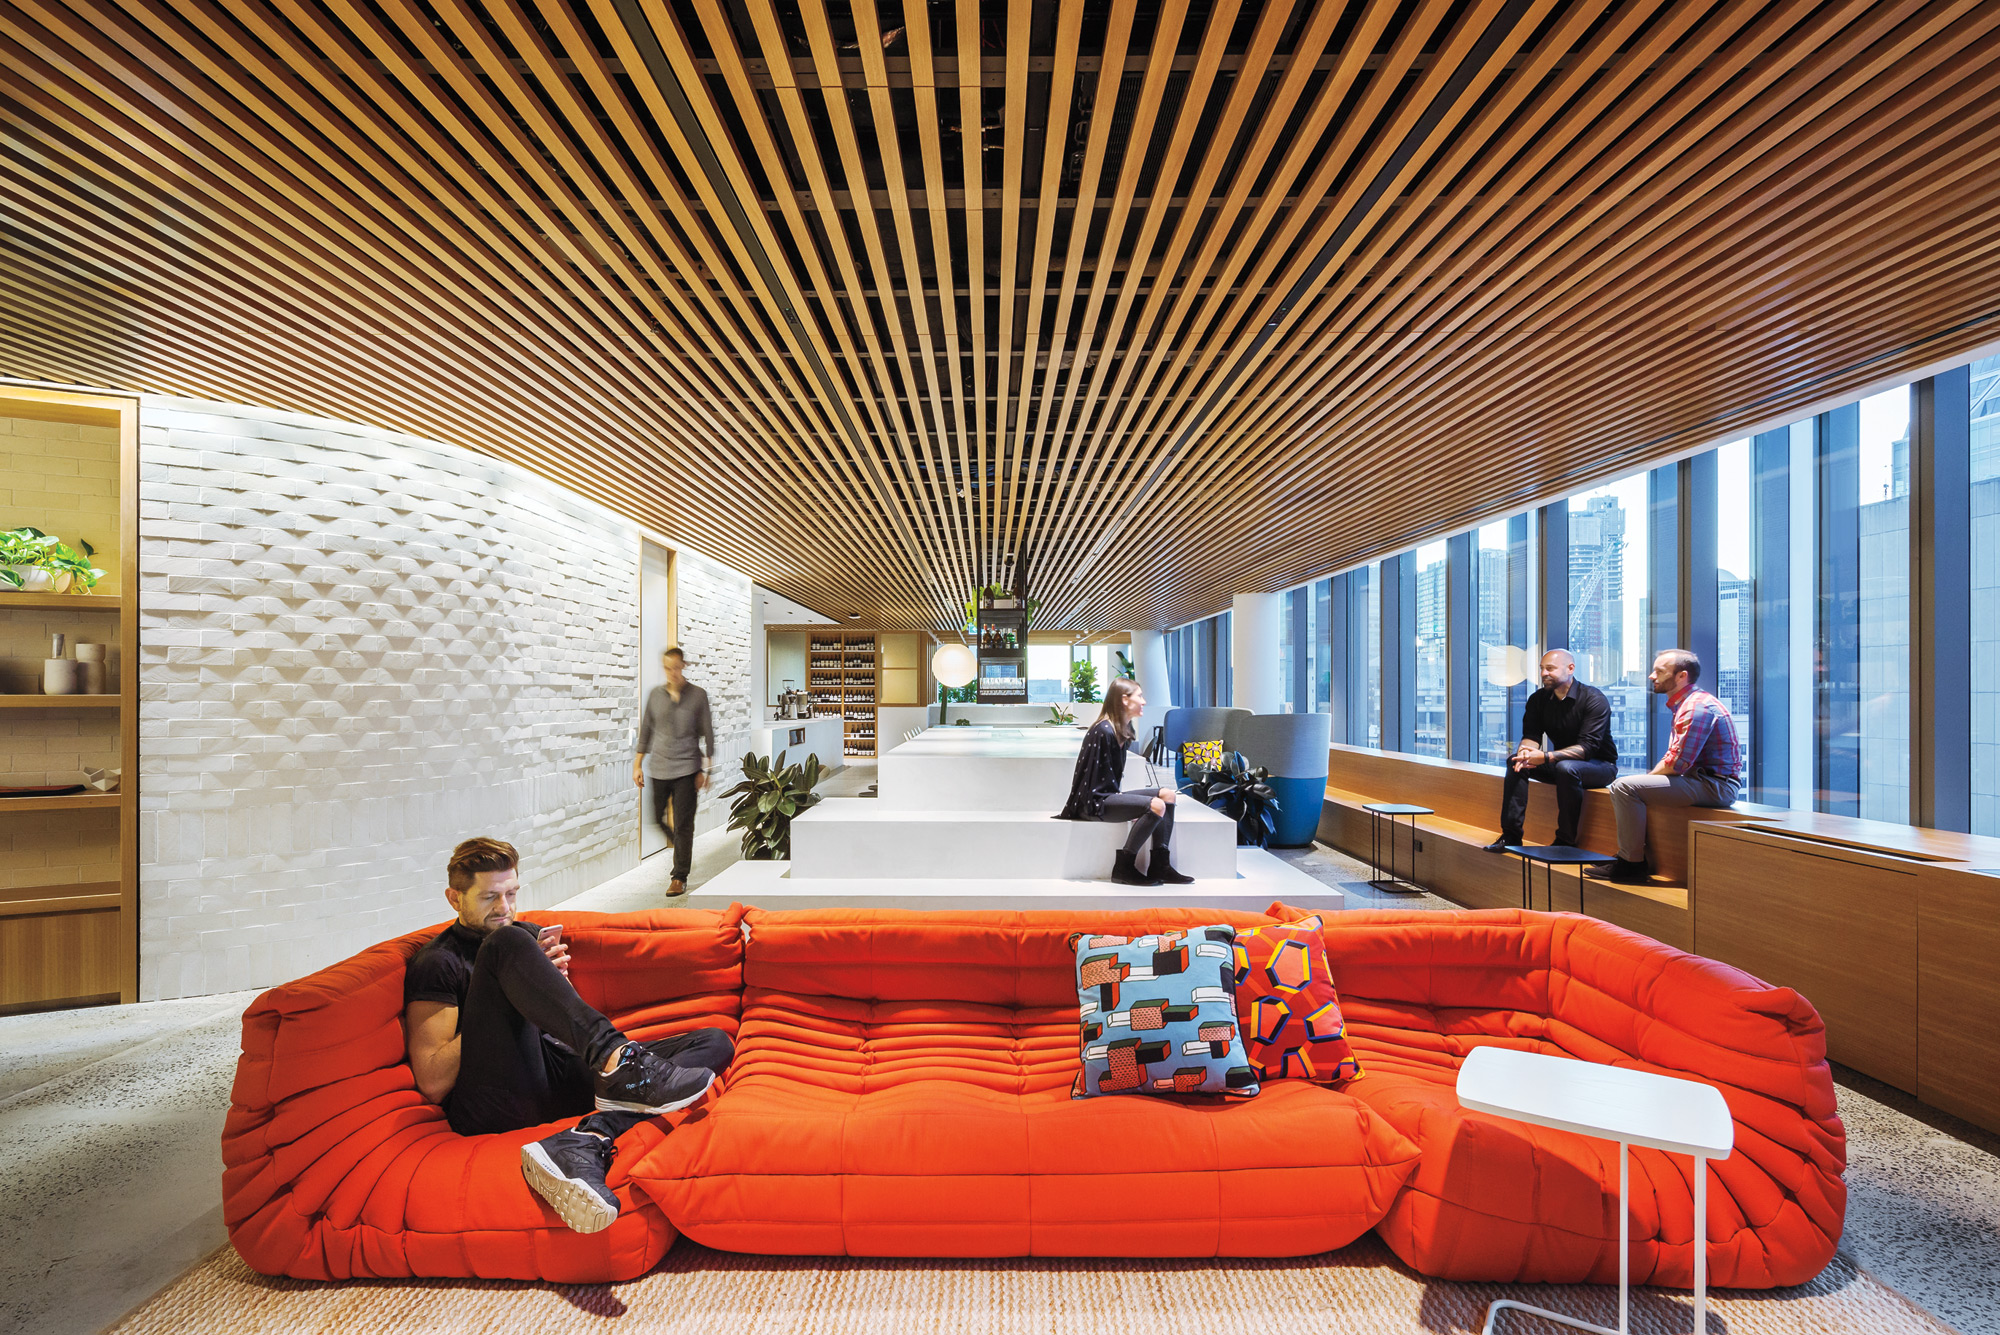 Dropbox S Intimate Sydney Office Channels The Home